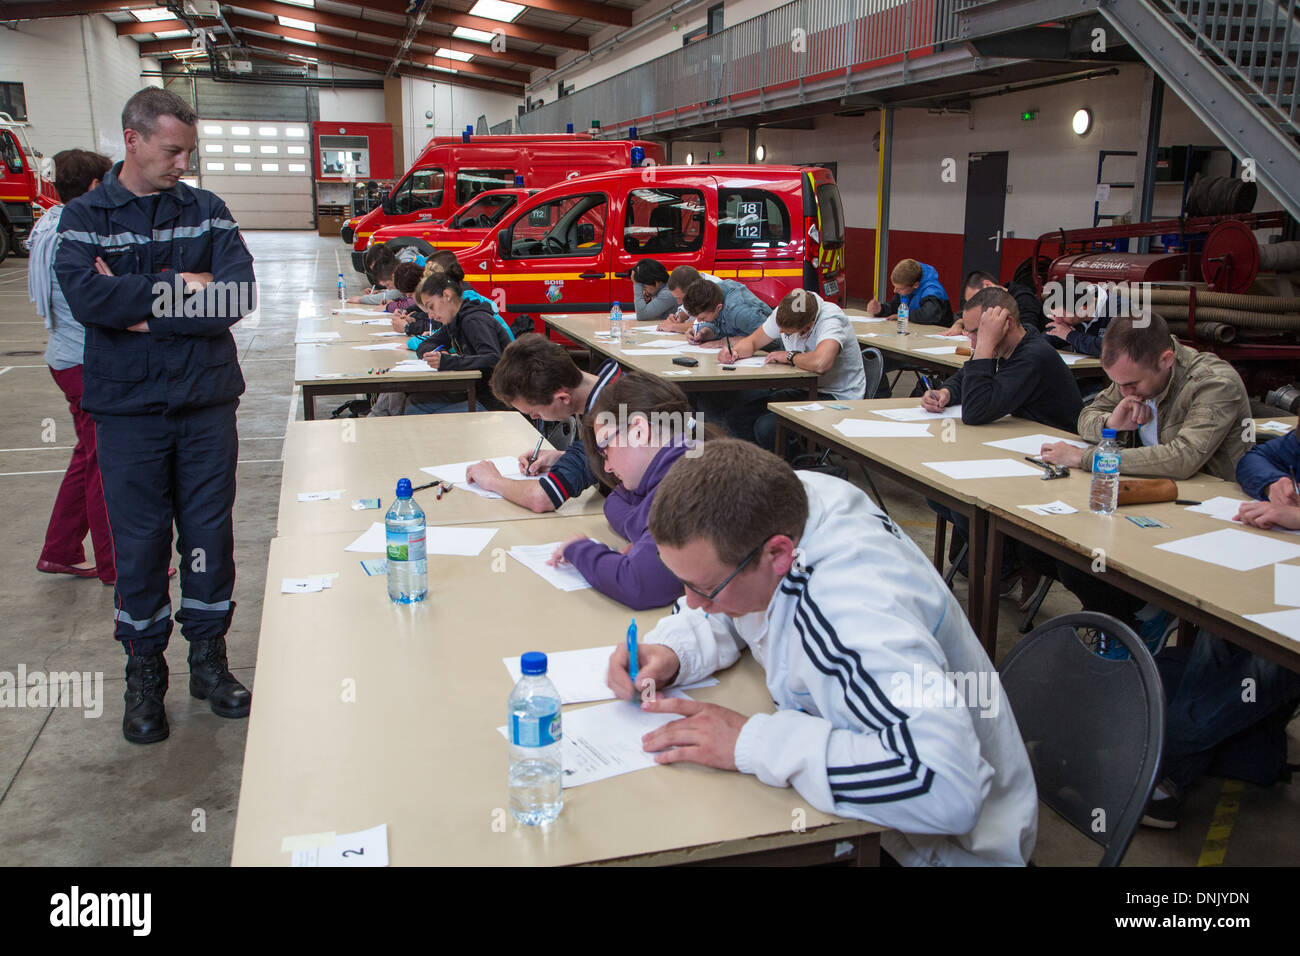 WRITTEN EXAM OF THE TEST IN THE VOLUNTEER FIREFIGHTERS DEPARTMENT